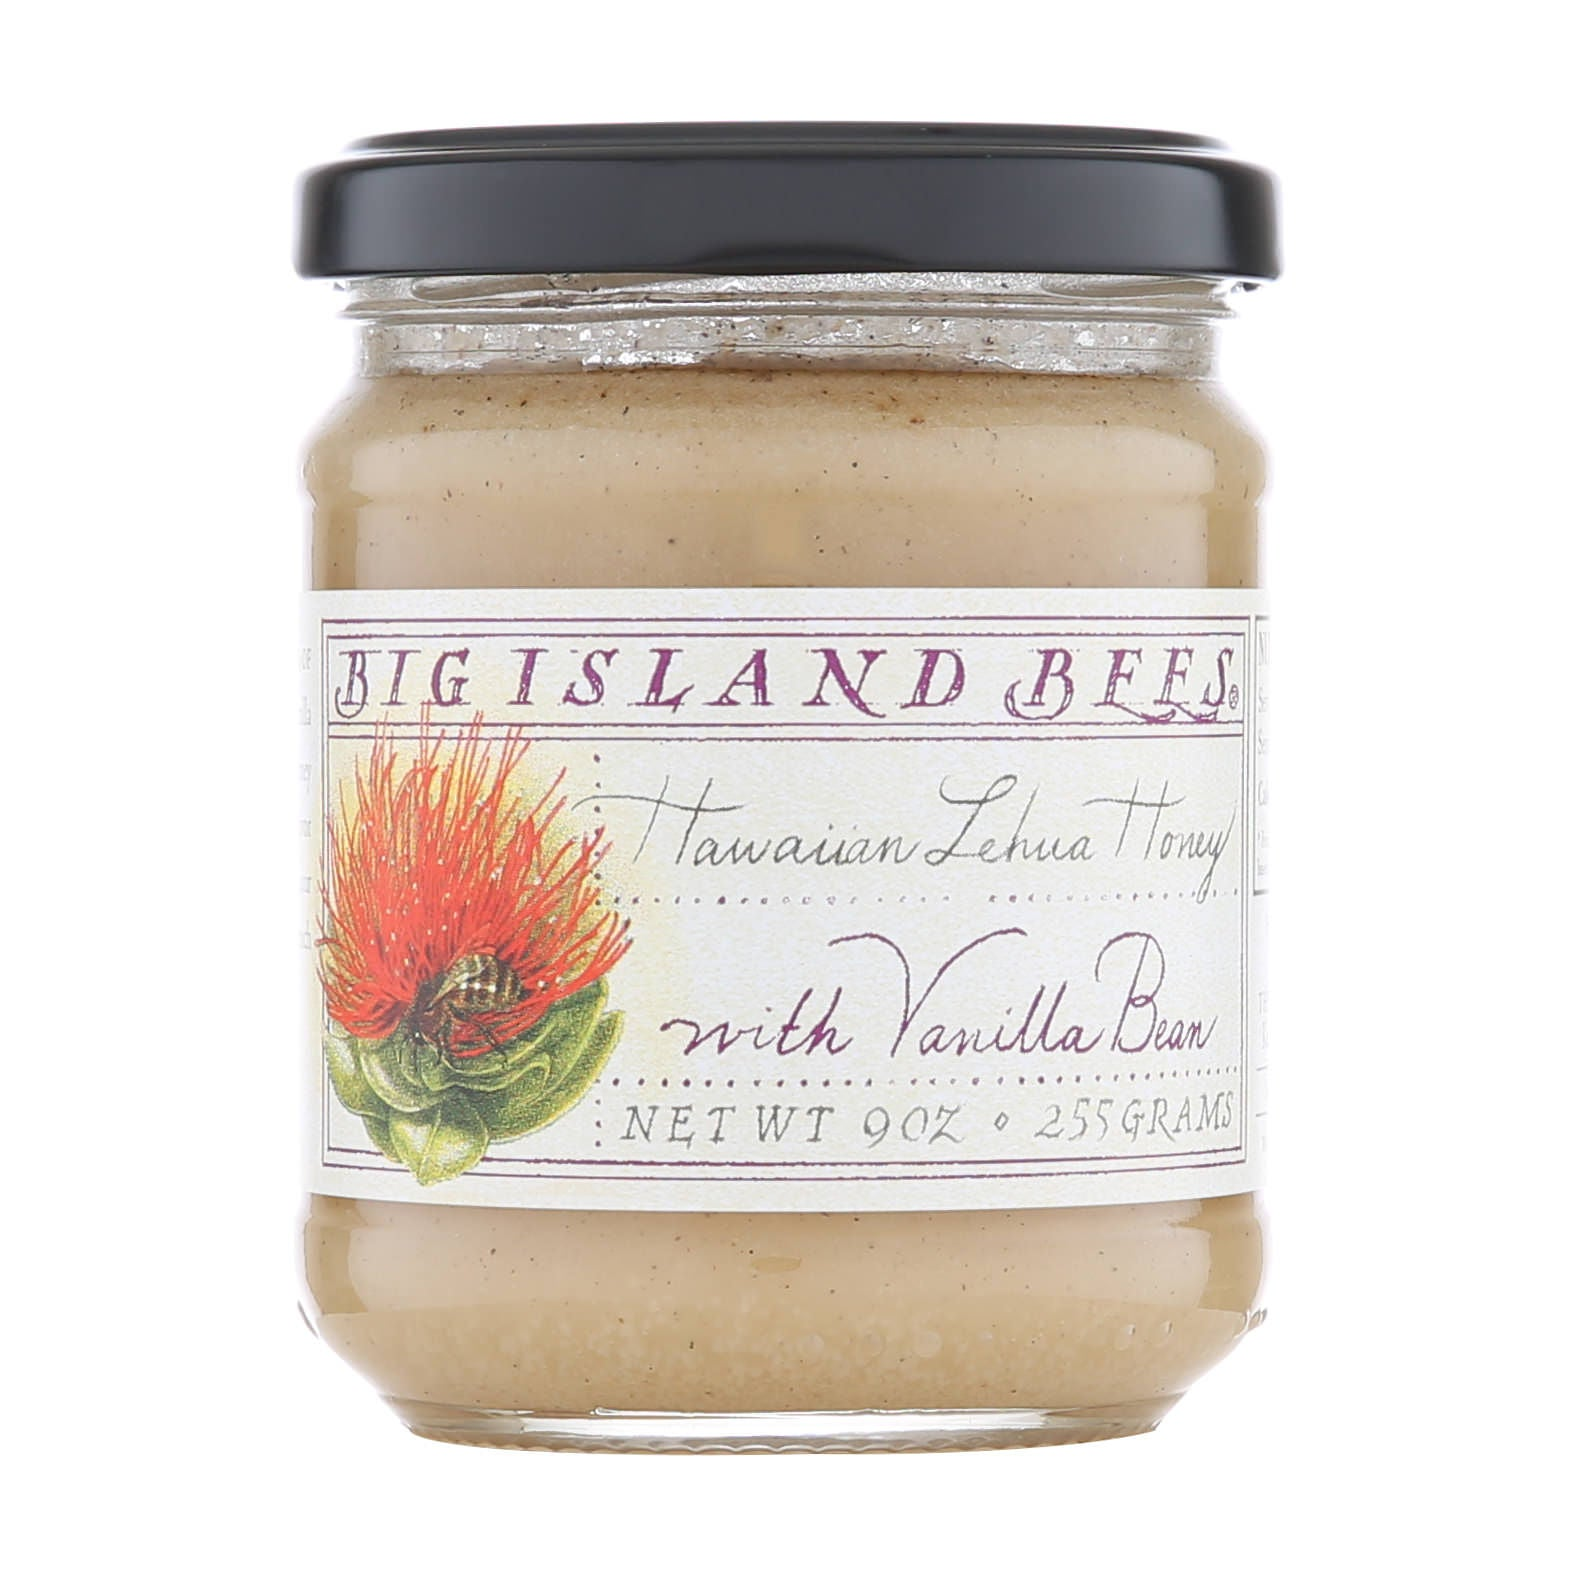 Big Island Bees Lehua Honey with Vanilla Bean